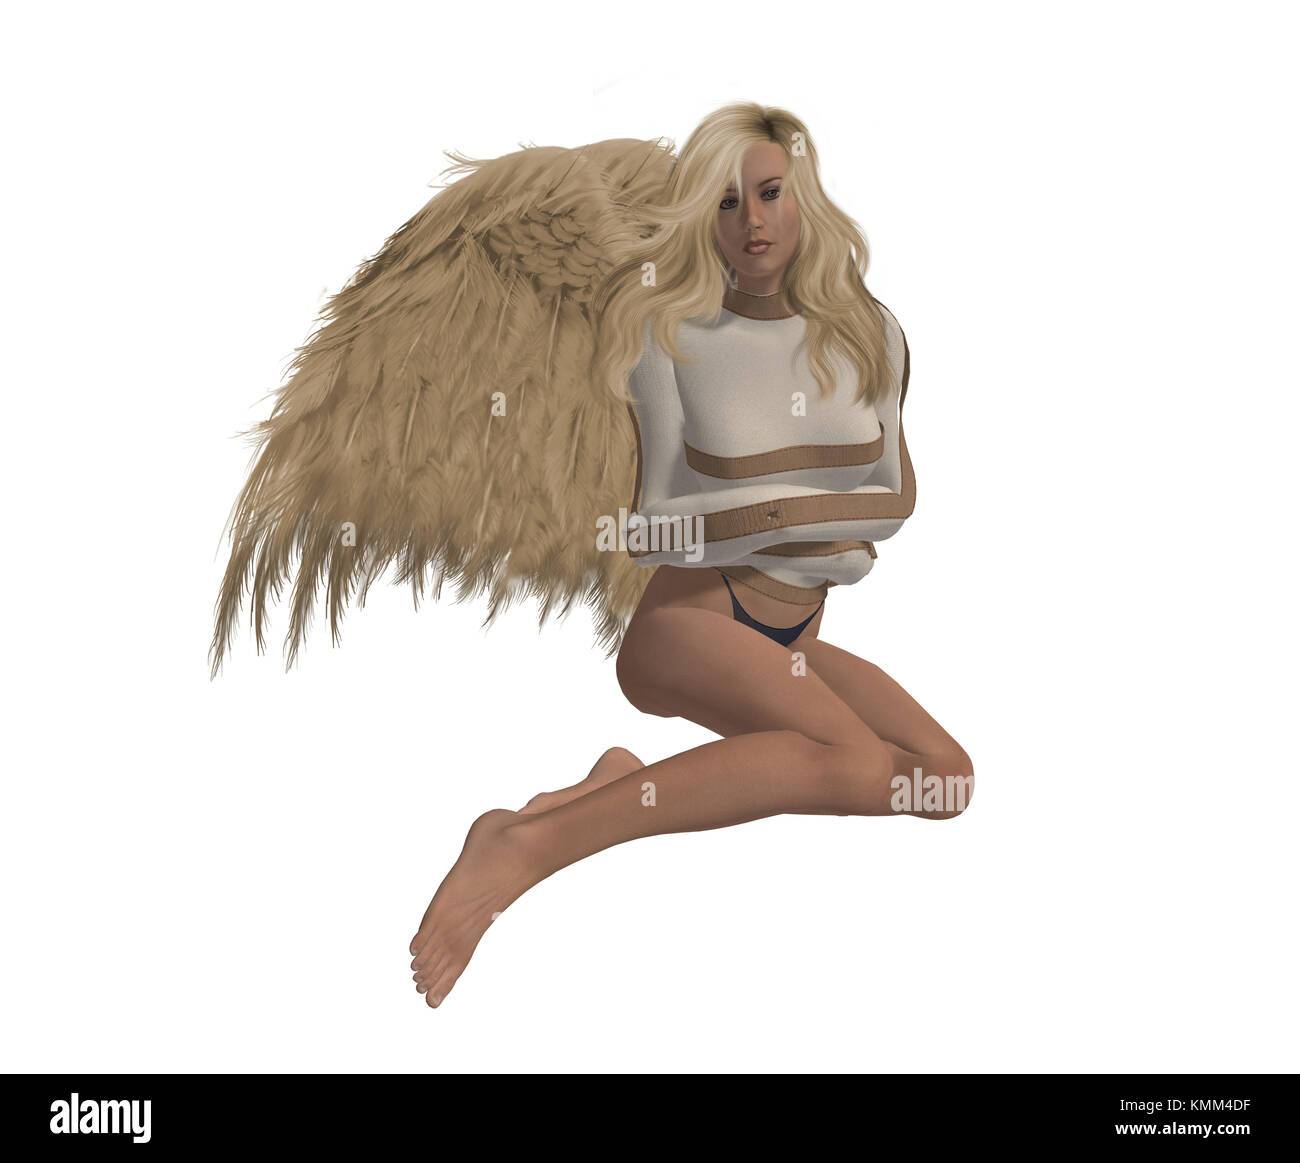 Rebel angel in a straight jacket, sitting down - Stock Image